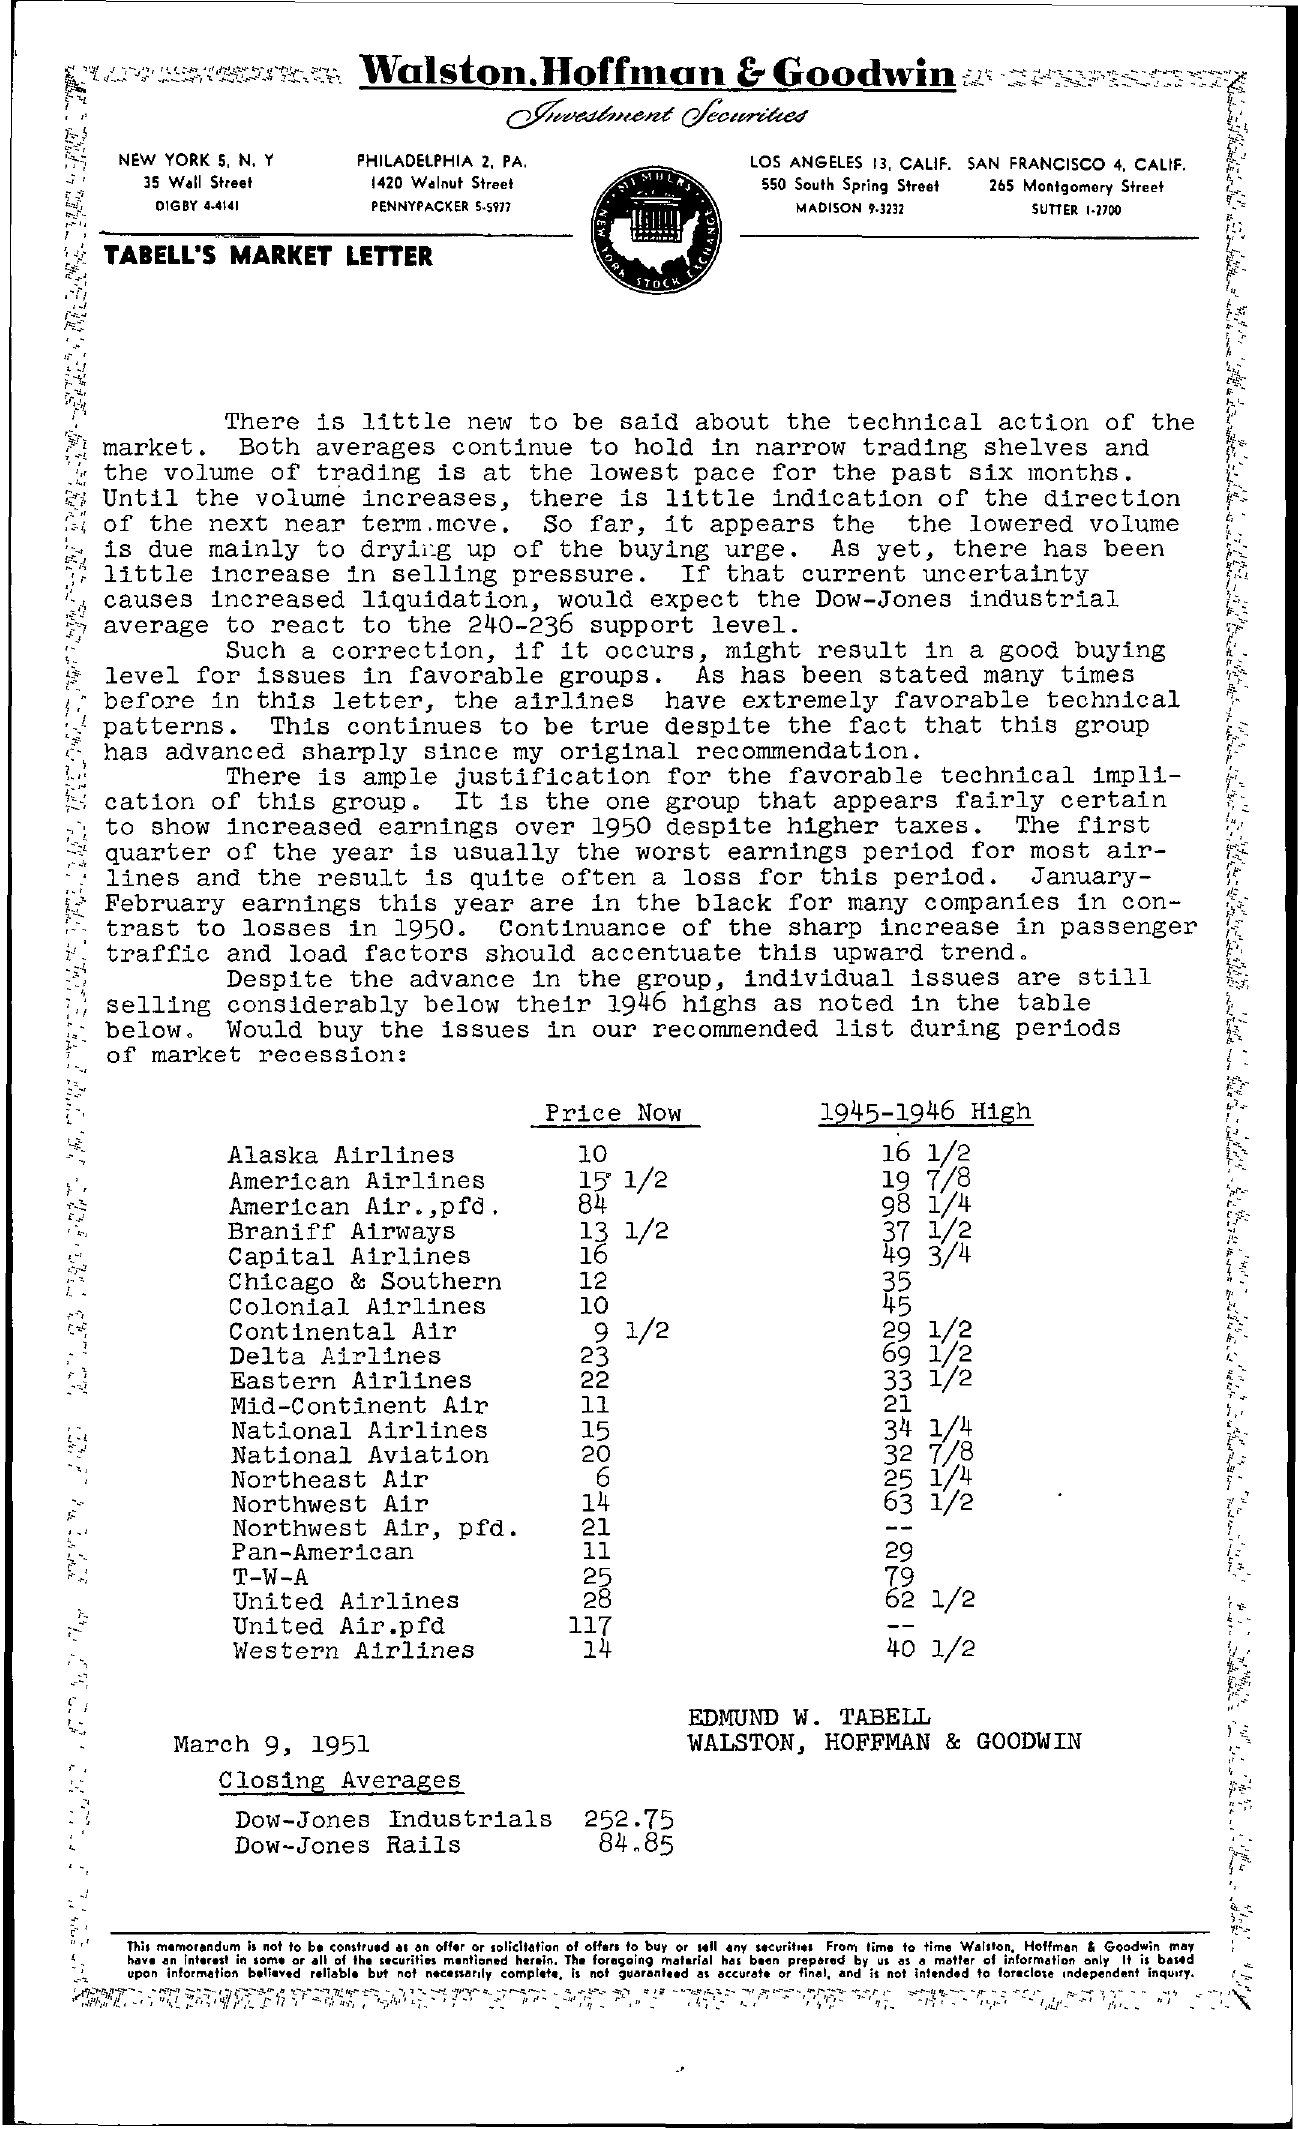 Tabell's Market Letter - March 09, 1951